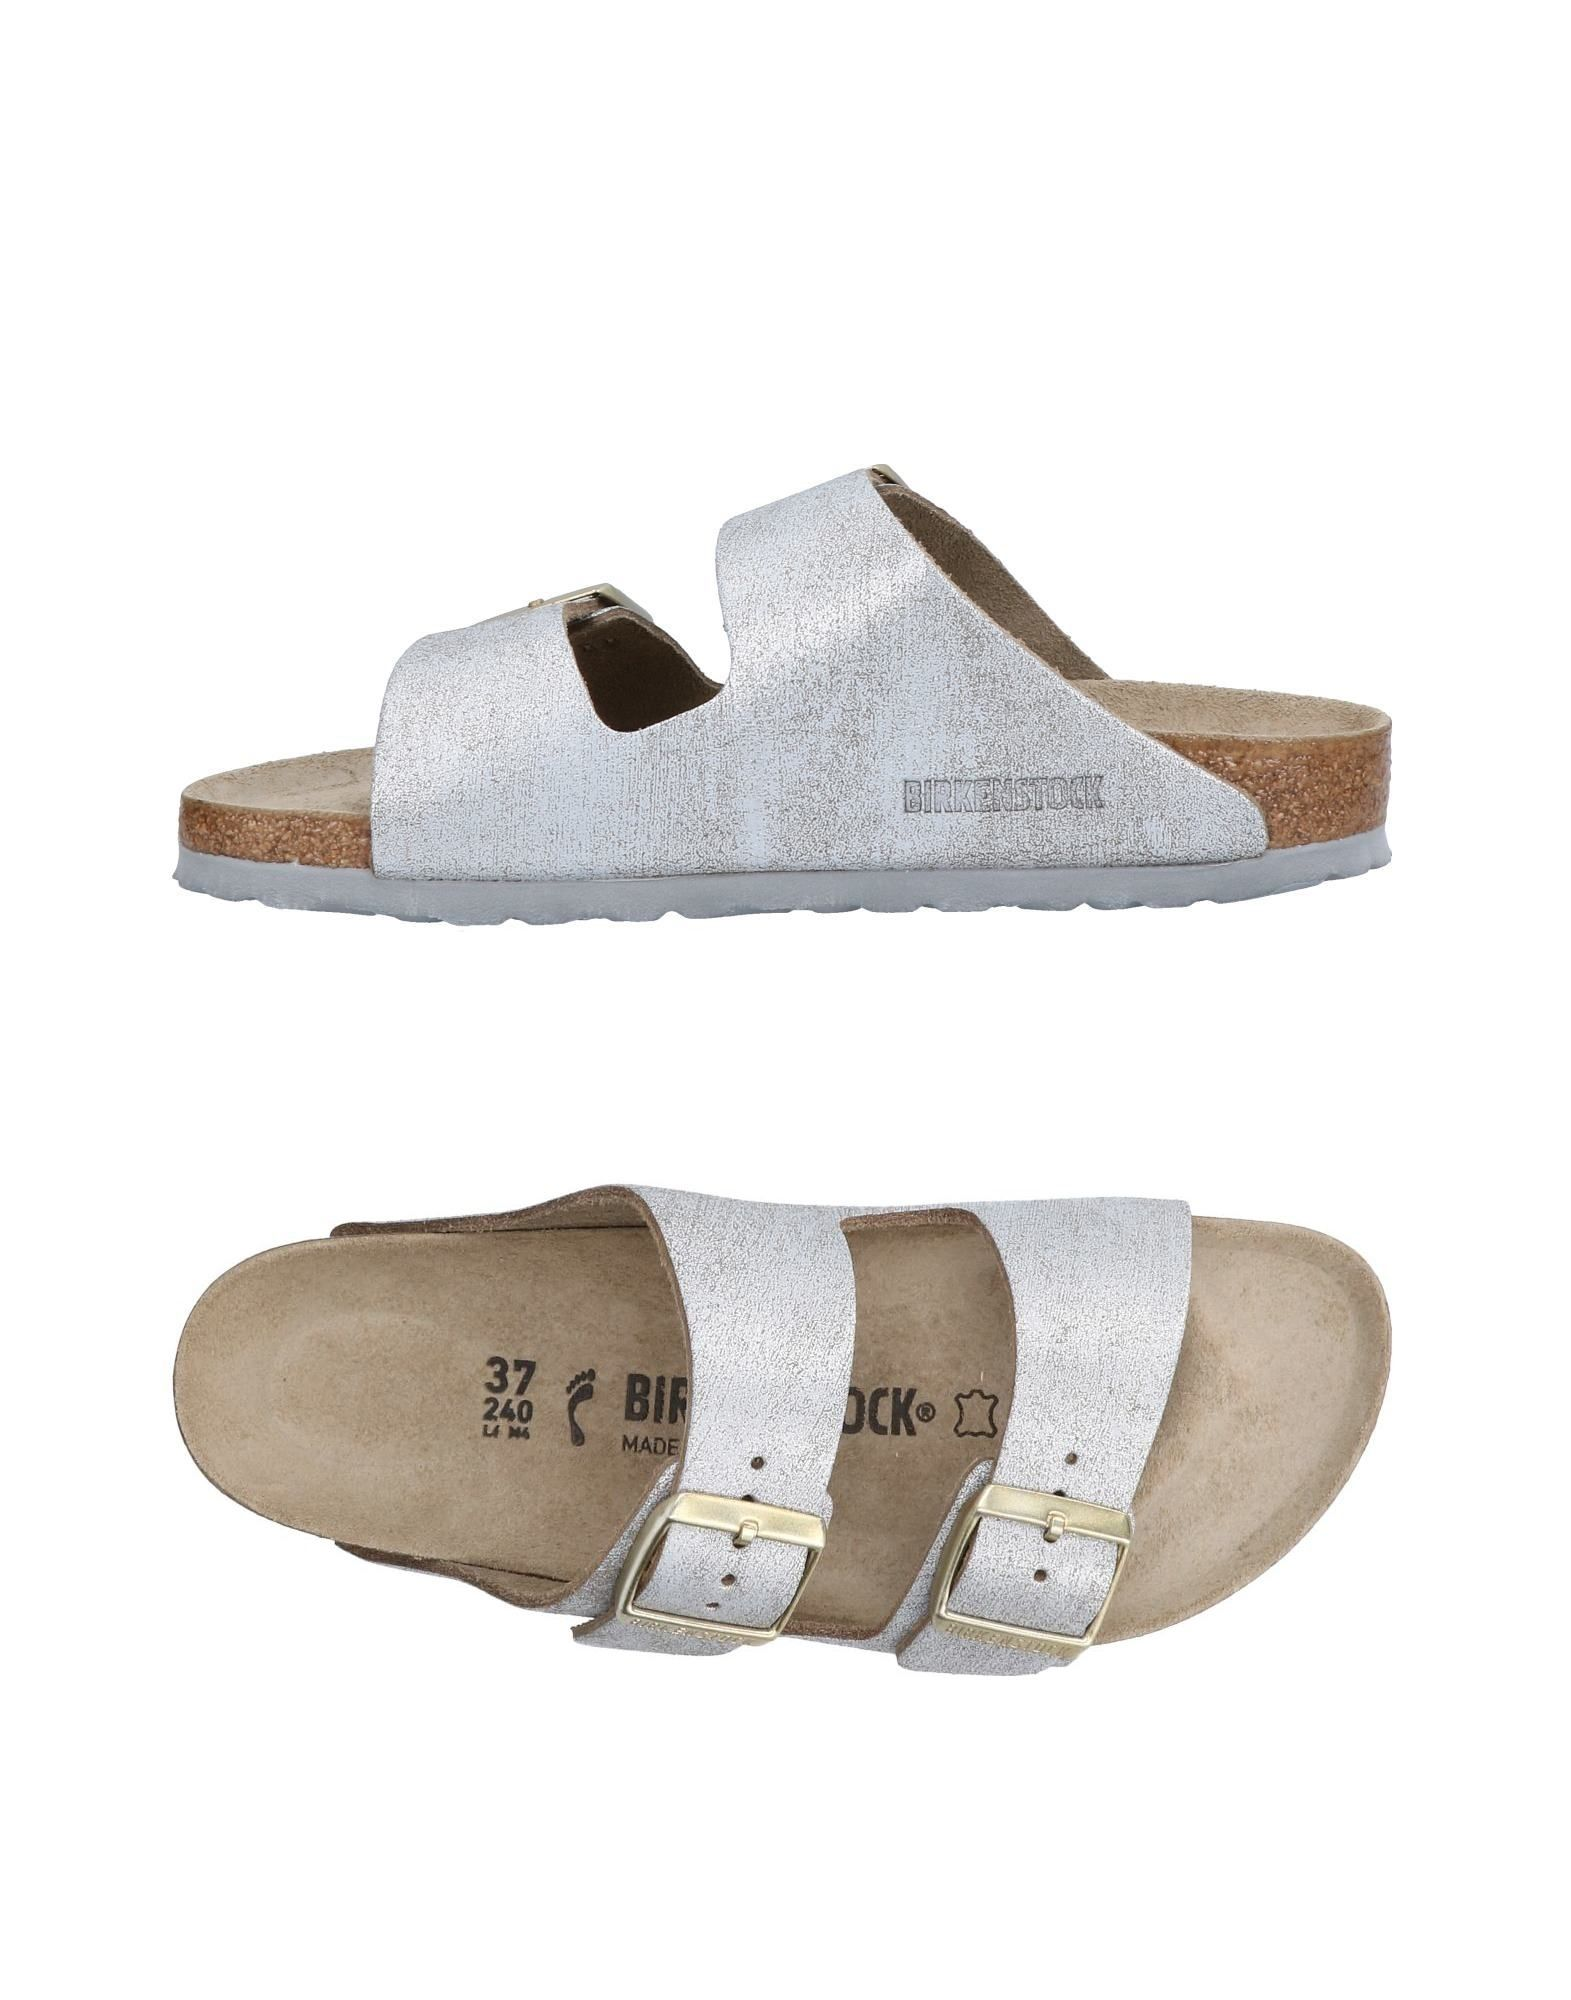 Birkenstock Sandals - Women Birkenstock United Sandals online on  United Birkenstock Kingdom - 11454981GS d17601